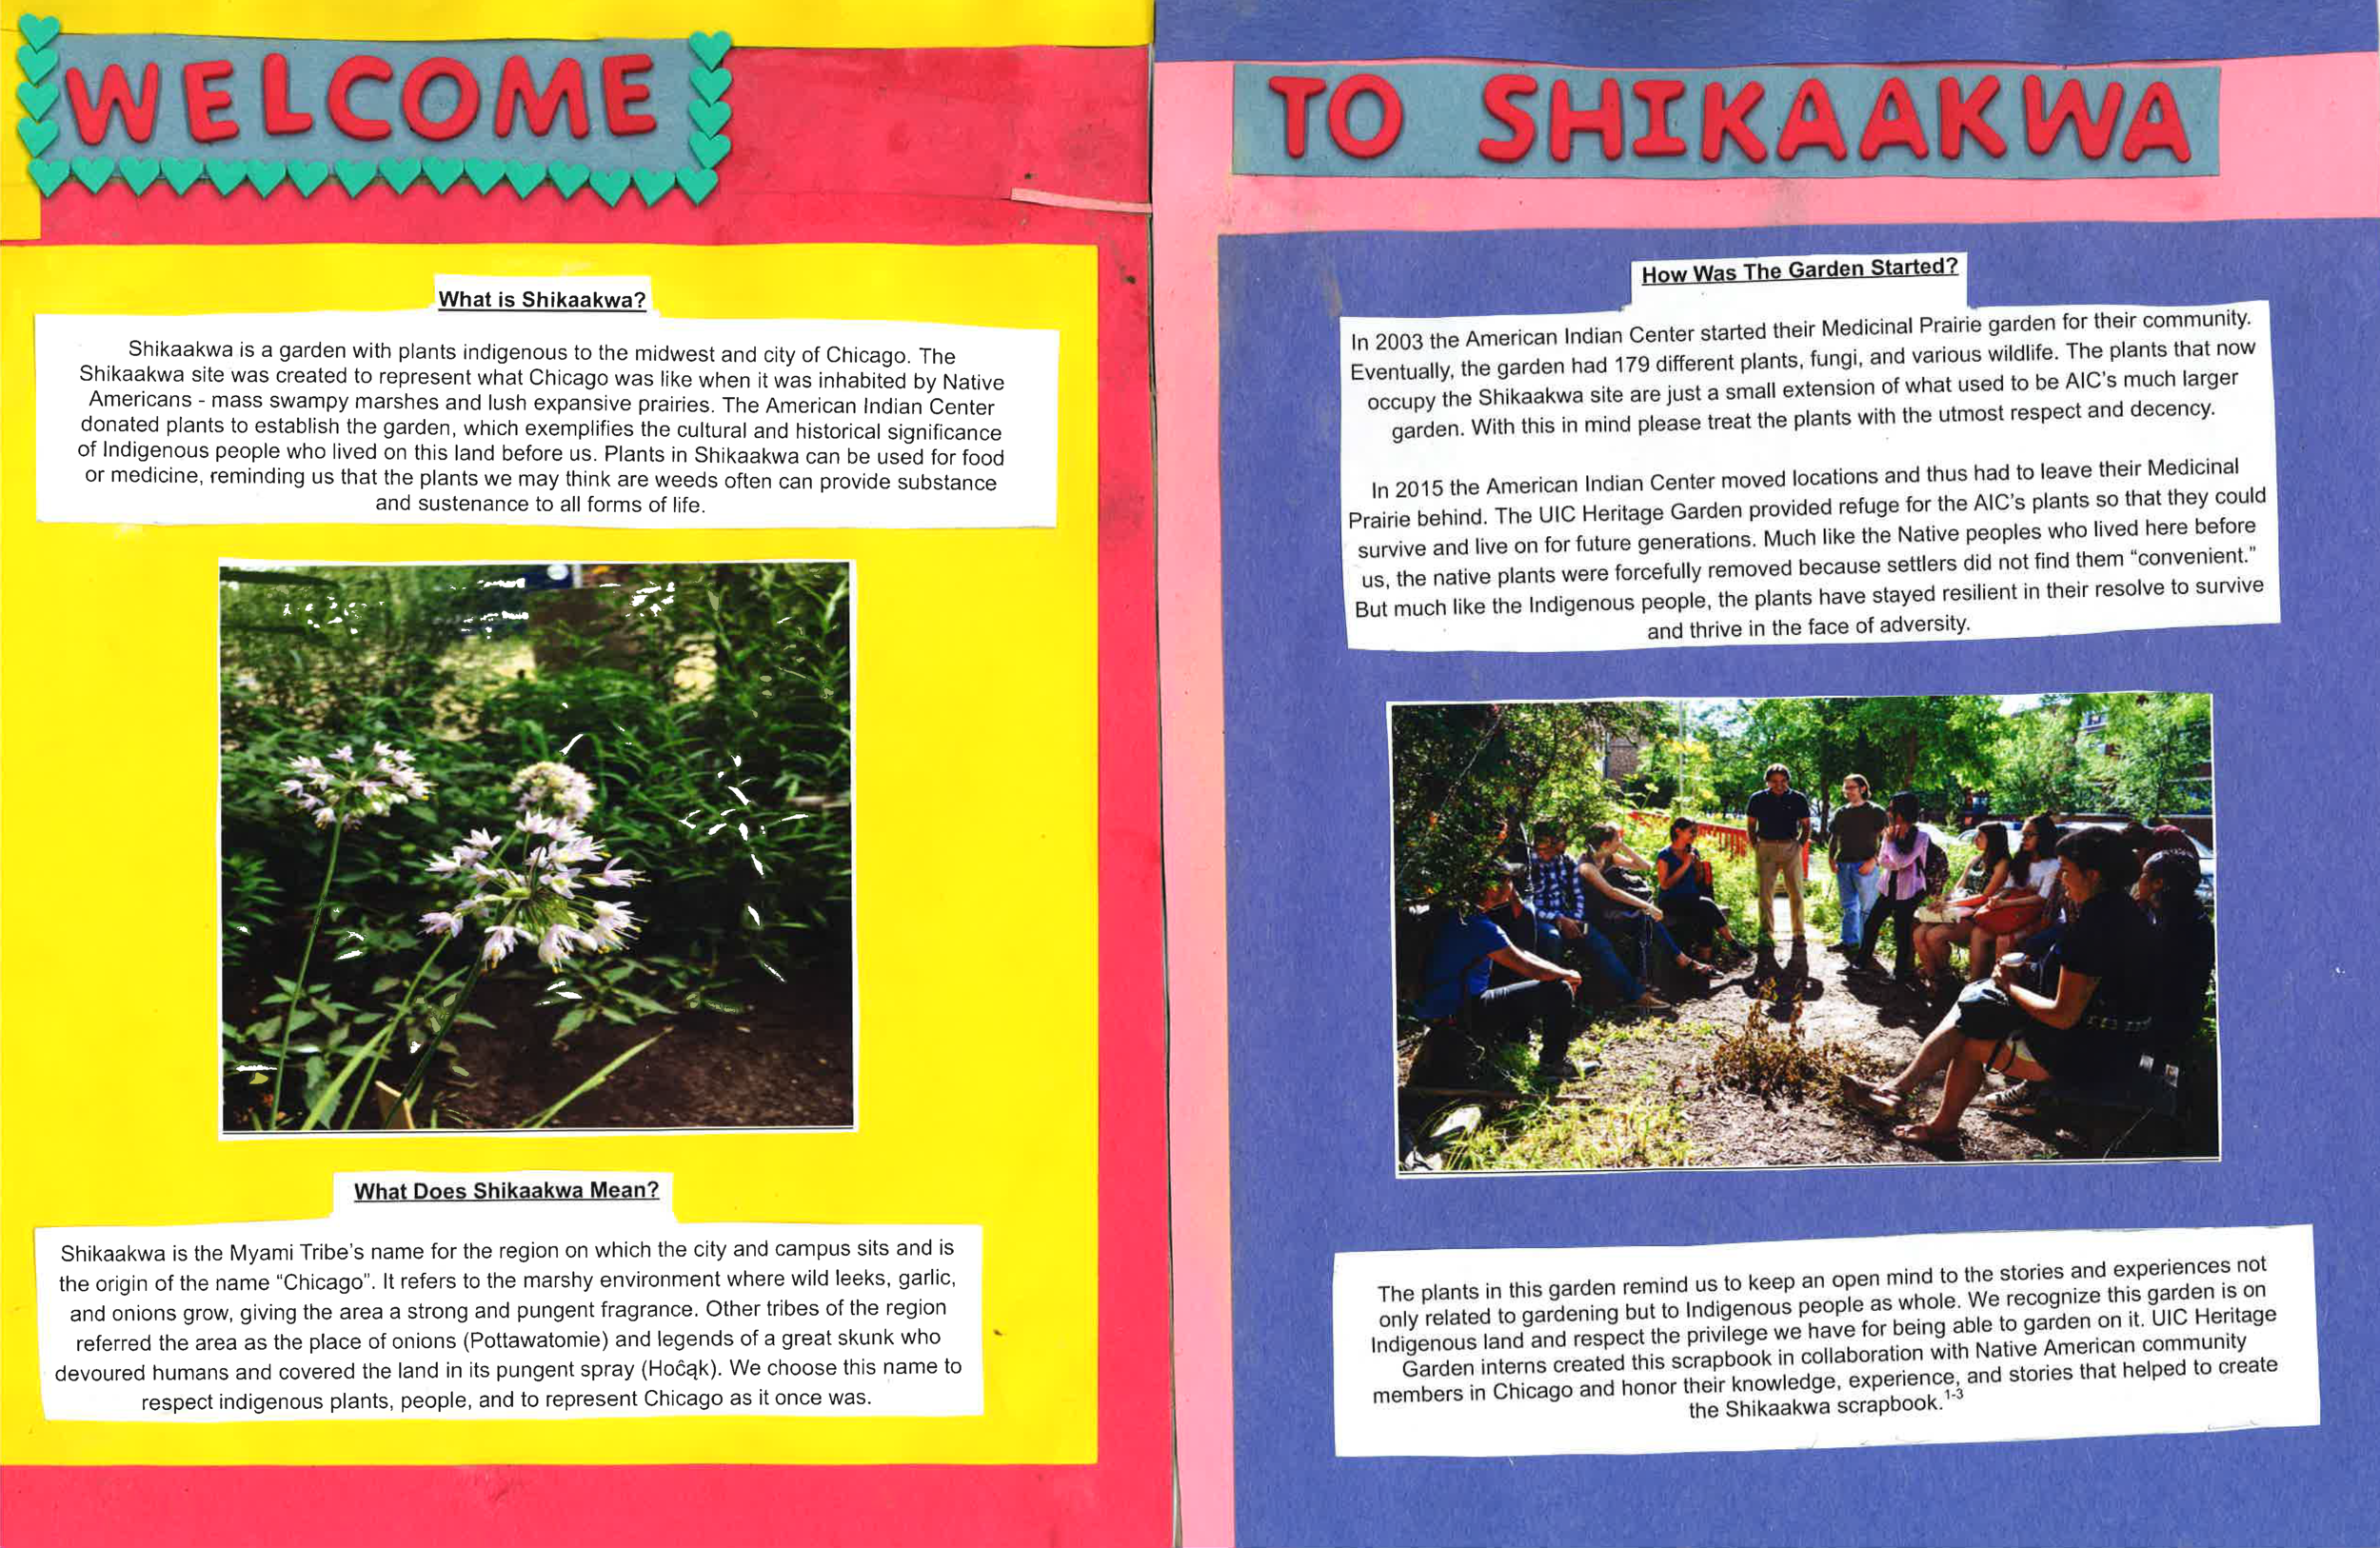 "Welcome to Shikaakwa   What is Shikaakwa?  Shikaakwa is a garden with plants indigenous to the midwest and the city of Chicago. The Shikaakwa site was created to represent what Chicago was like when it was inhabited by Native Americans - mass swampy marshes and lush expansive prairies. the American Indian Center donated plants to establish the garden, which exemplifies the cultural and historical significance of indigenous people who lived on this land before us. Plants in Skikaakwa can be used for food or medicine, reminding us that the plants we may think are weeds often can provide substance and sustenance to all forms of life.  [Picture of plants]  What does Shikaakwa Mean?  Shikaakwa is the Myami Tribe's name for the region on which the city and campus sits and is the origin of the name ""Chicago."" It refers to the marshy environment where wild leeks, garlic, and onions grow, giving the area a strong and pungent fragrance. Other tribes of the region referred the area as the place of onions (Pottawatomie) and legends of a great skunk who devoured humans and covered the land in its pungent spray (Hočąk). We choose this name to respect indigenous plants, people, and to represent Chicago as it once was.  How was the garden started?  In 2003 the American Indian Center started their Medicinal Prairie garden for their community. Eventually, the garden had 179 different plants, fungi, and various wildlife. The plants that now occupy the Shikaakwa site are just a small extension of what used to be AIC's much larger garden. With this in mind please treat the plants with the utmost respect and decency.  In 2015 the American Indian Center moved locations and had to leave their Medicinal Prairie behind. The UIC Heritage Garden provided refuge for the AIC's plants so that they could survive and live on for future generations. Much like the Native peoples who lived here before us, the native plants were forcefully removed because settlers did not find them ""convenient."" But much like the Indigenous people, the plants have stayed resilient in their resolve to survive and thrive in the face of adversity.  The plants in this garden remind us to keep an open mind to the stories and experiences not only related to gardening but to Indigenous people as whole. We recognize this garden is on Indigenous land and respect the privilege we have for being able to garden on it. UIC Heritage Garden interns created this scrapbook in collaboration with Native American community members in Chicago and honor their knowledge, experience, and stories that helped to create the Shikaakwa scrapbook."